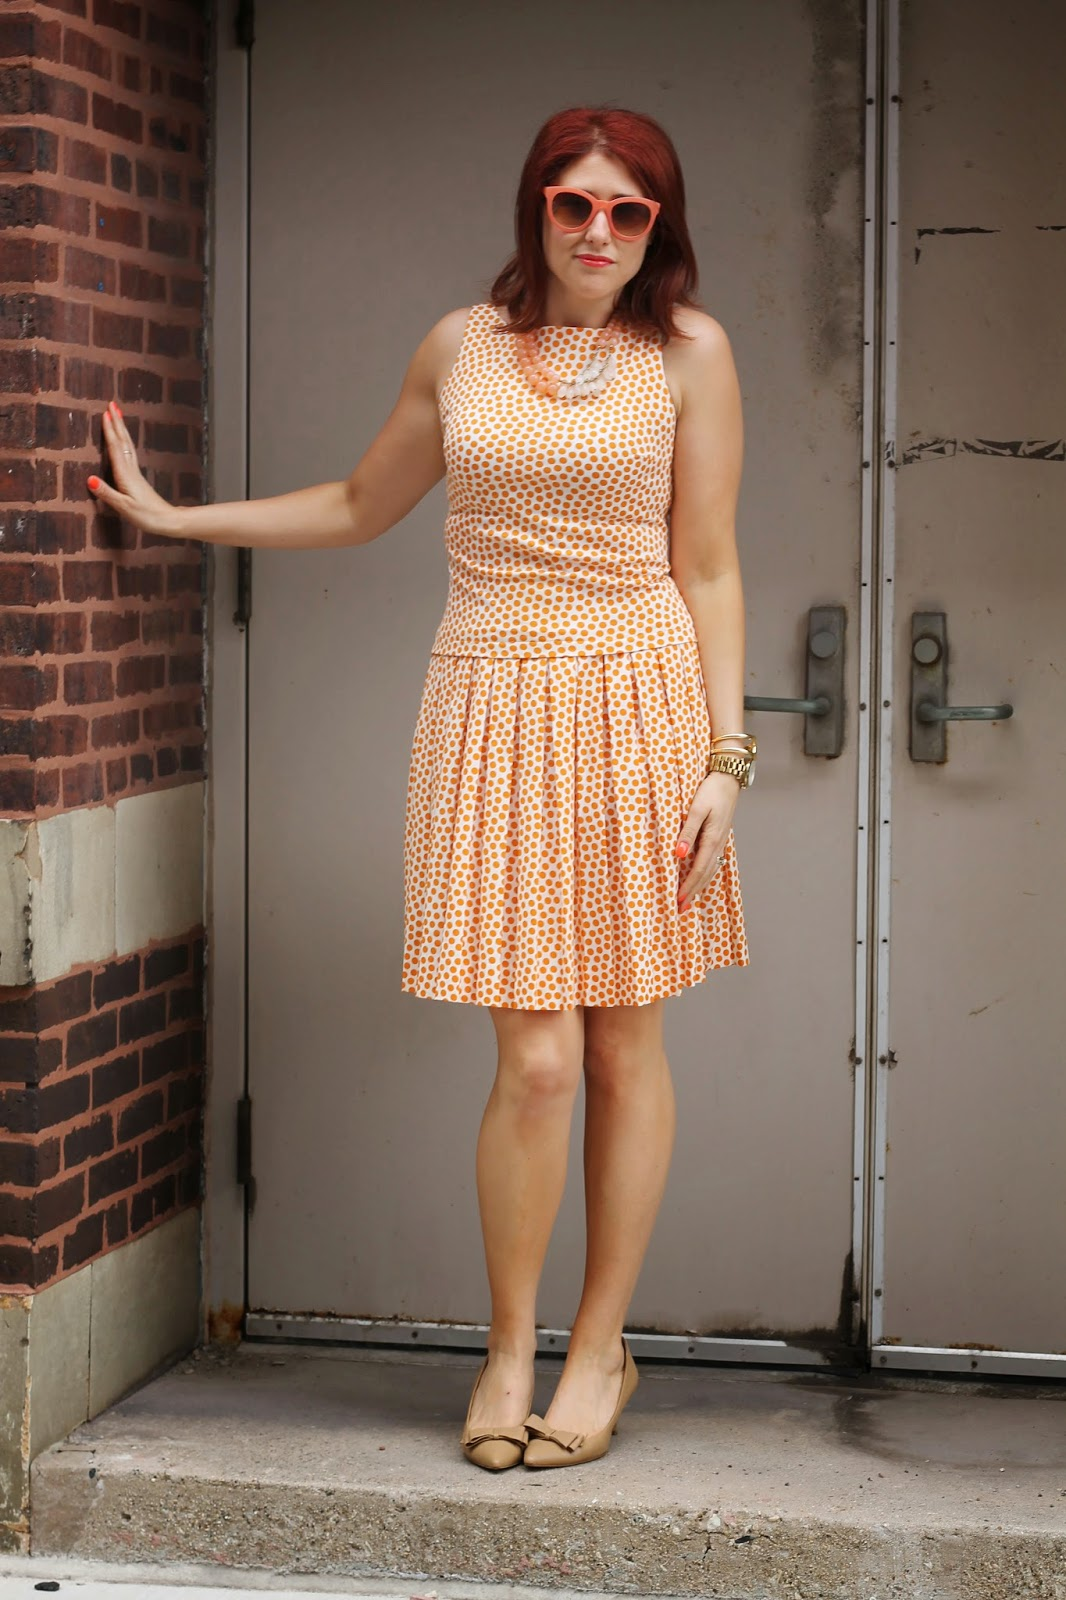 vintage, polka dot, dress, bow, pumps, retro, red hair